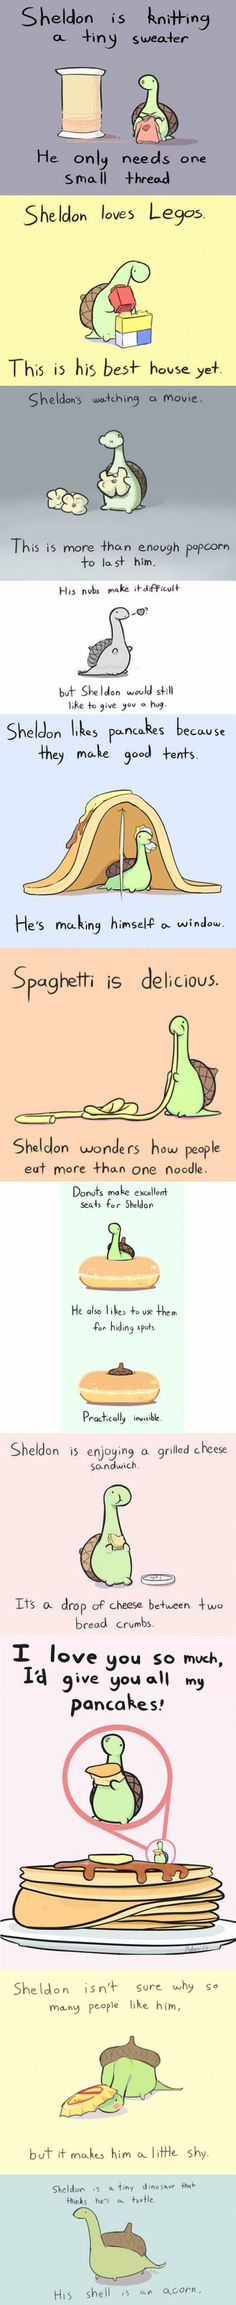 Sheldon is a tiny dinosour that thinks he is a turtle